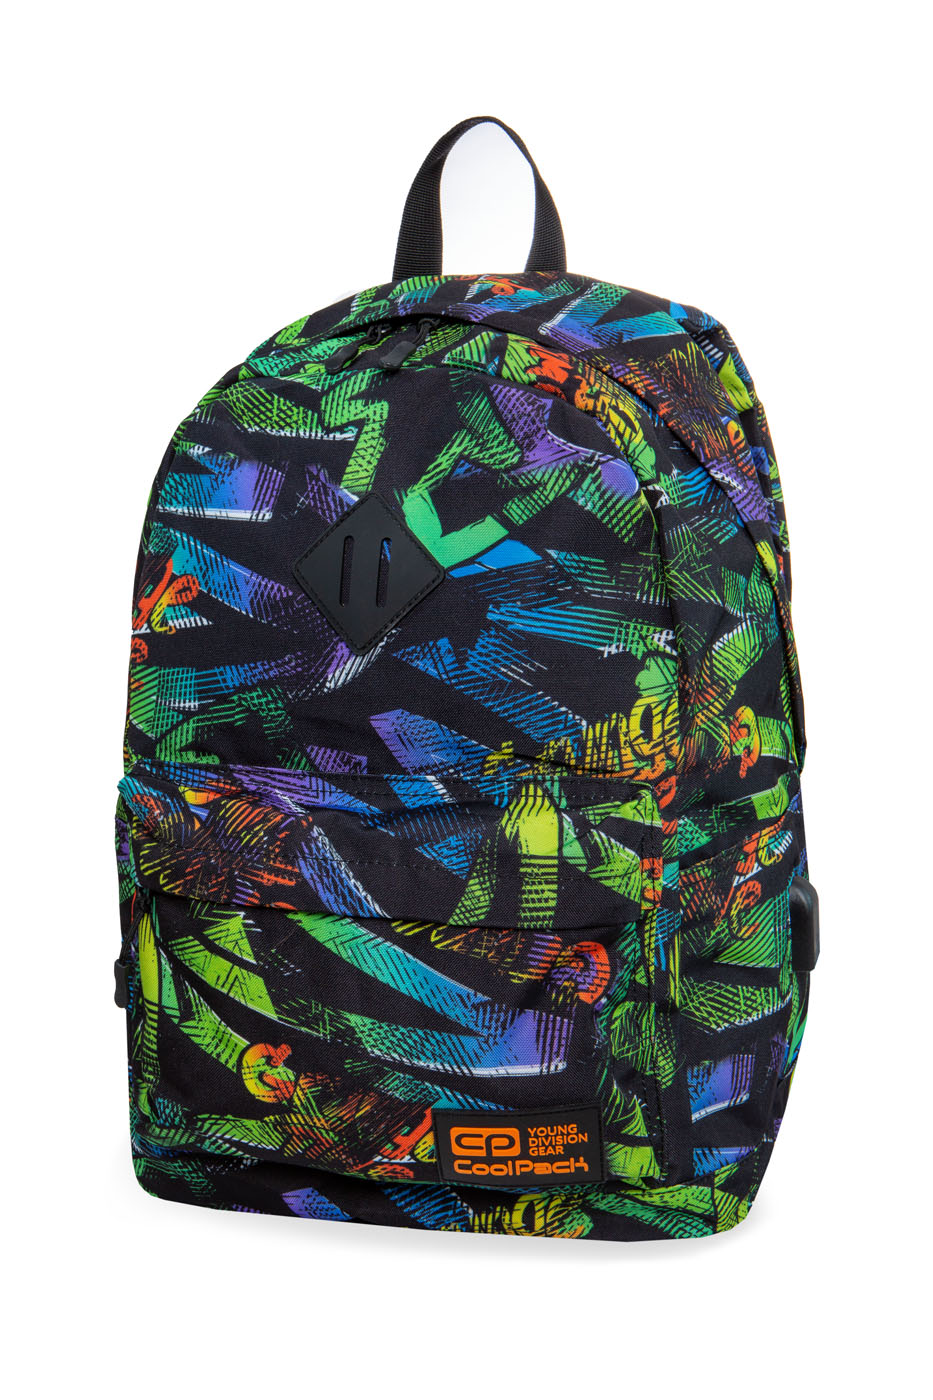 Coolpack - cross - youth backpack - grunge time